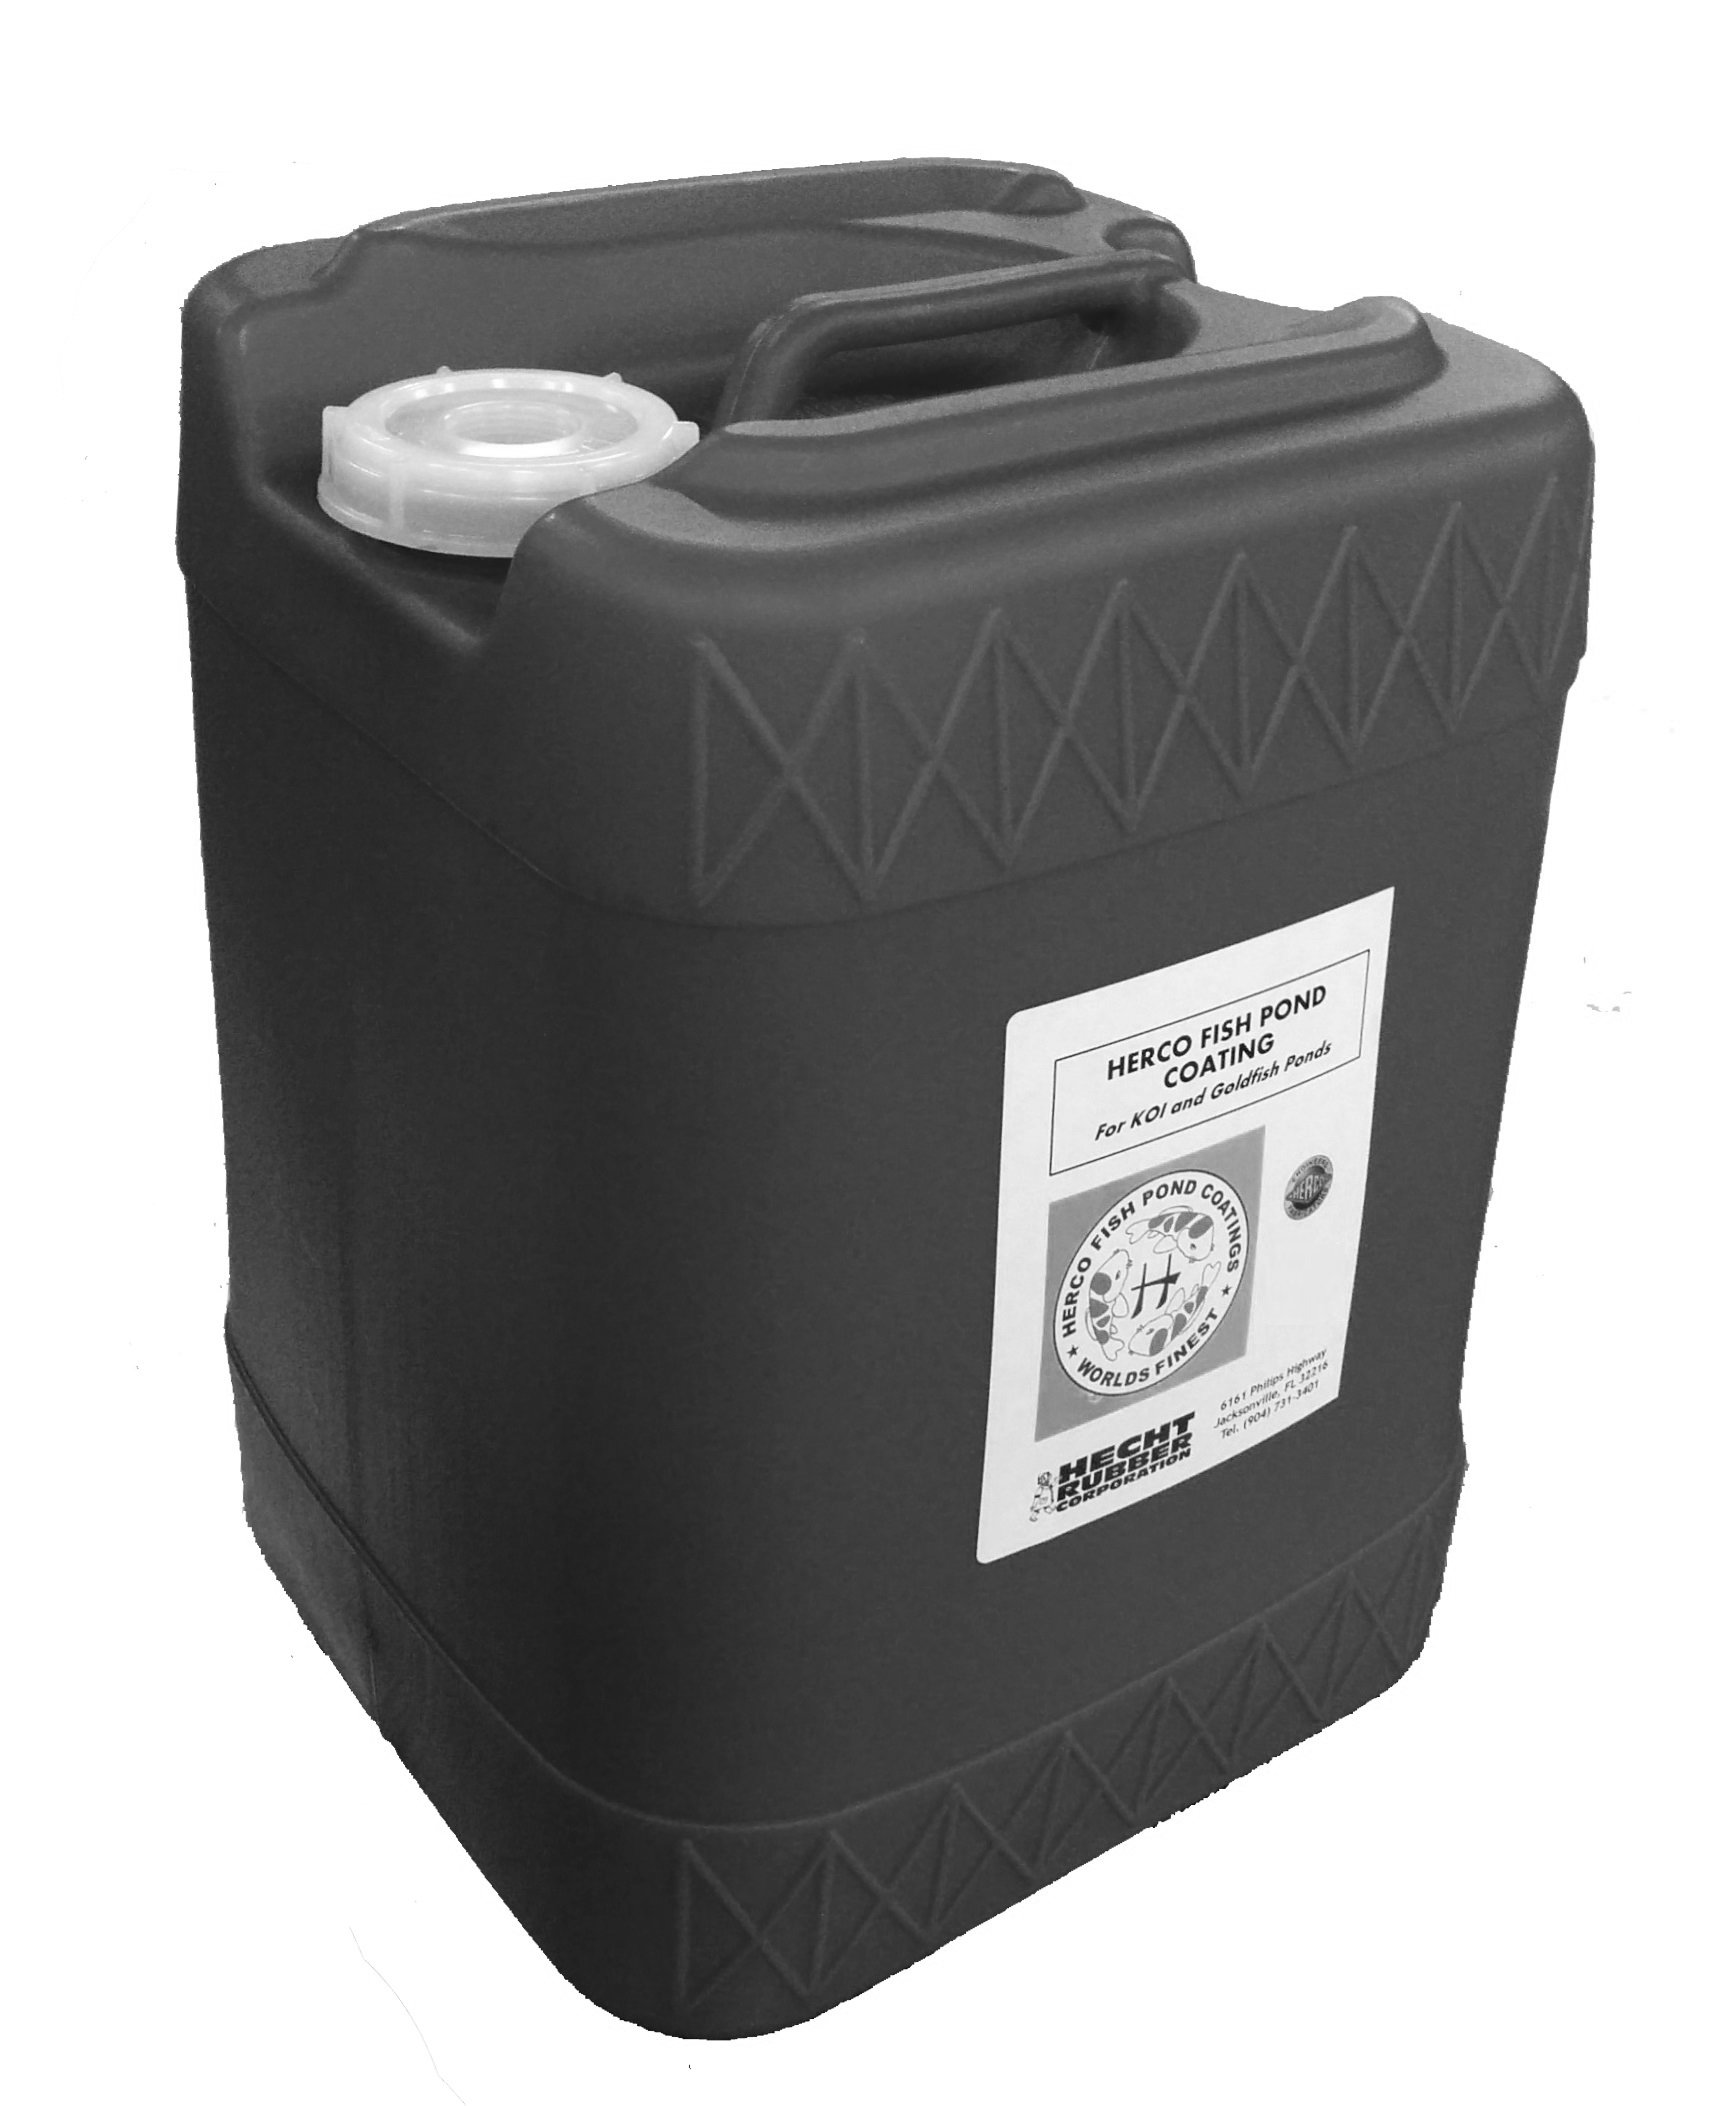 Herco H-55 Pond Coating - Five Gallons - Black